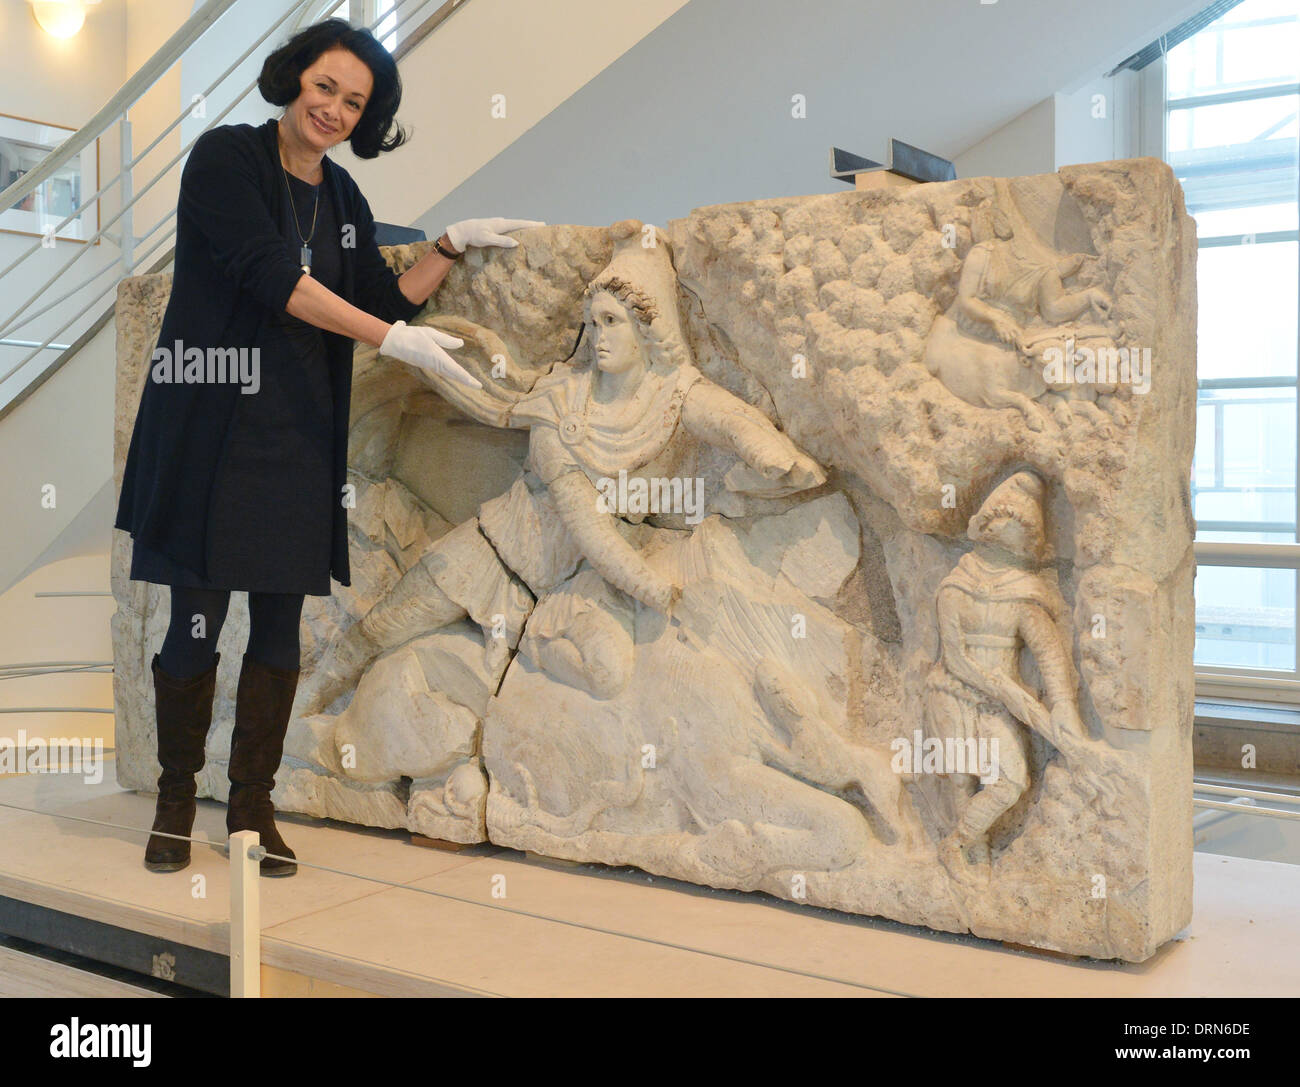 Karlsruhe, Germany. 29th Jan, 2014. ATTENTION PUBLICATION BLOCKING PERIOD THURSDAY 30 JANUARY 2014 4.30 PM Katarina Horst, collection and science manager at Baden State Museum, shows the reconstructed Relief of Mithras of Tor Cervara in Rome in Karlsruhe Palace at the Baden State Museum in Karlsruhe, Germany, 29 January 2014. The relief weighs two tons and was built in 150 AD. The antique artwork was damaged during a bomb attack, and stolen and sold in parts. The Baden State Museum (Badisches Landesmuseum) put the pieces together. Photo: Uli Deck/dpa/Alamy Live News - Stock Image